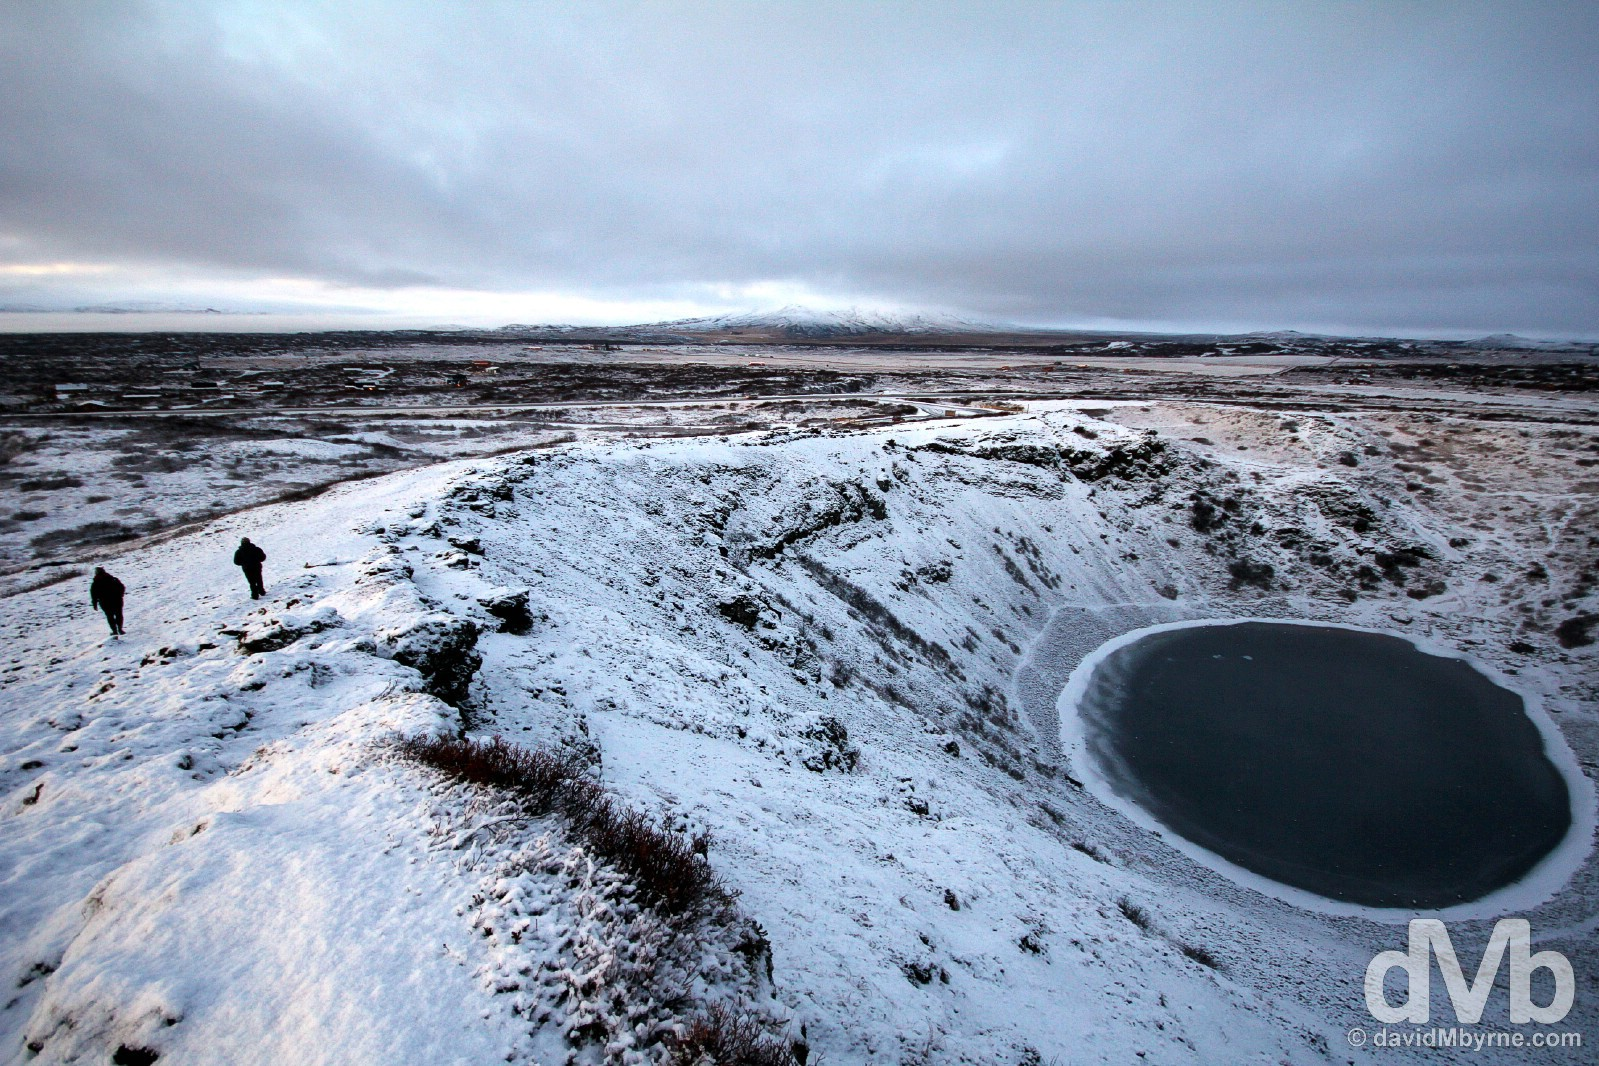 Walking by the rim of the 6,500-year-old Kerio crater in southwest Iceland. December 3, 2012.